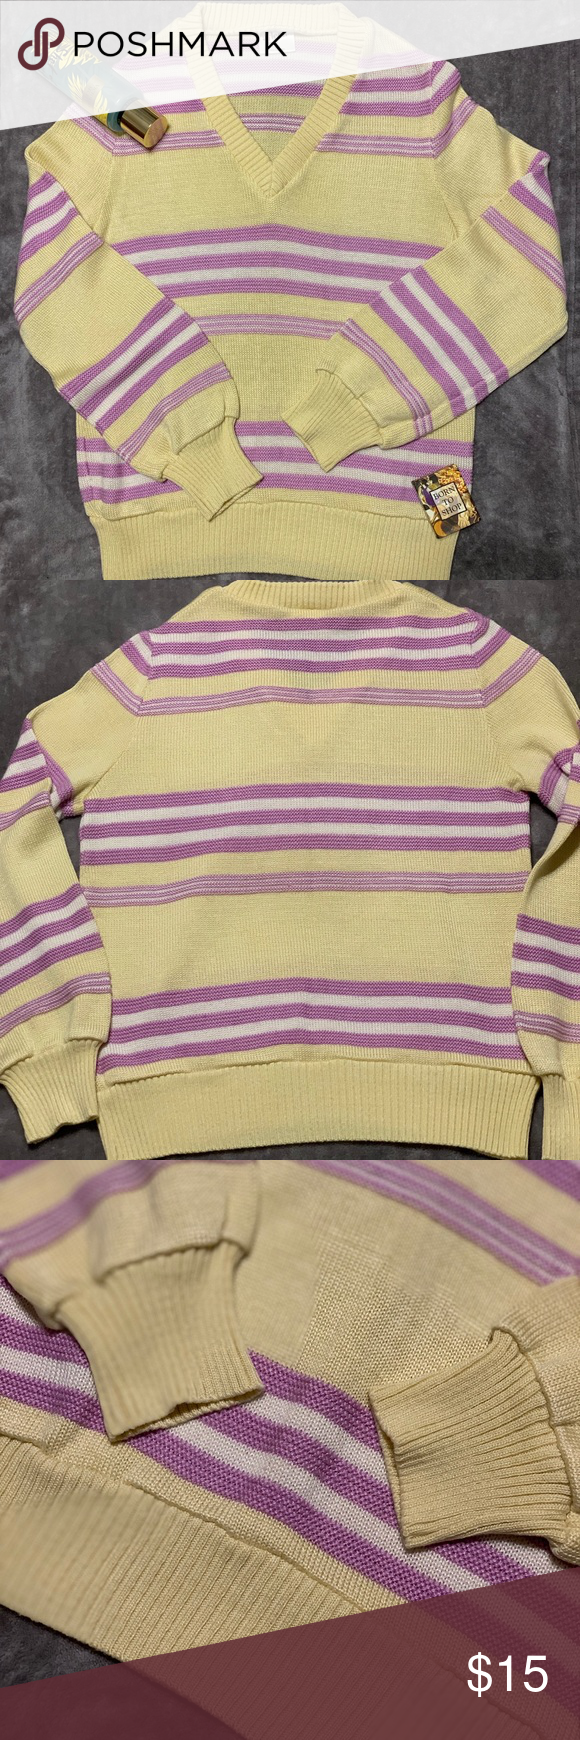 Vntg Aileen Sport V Neck Sweater Vneck Sweater Sweaters Vintage Sweaters